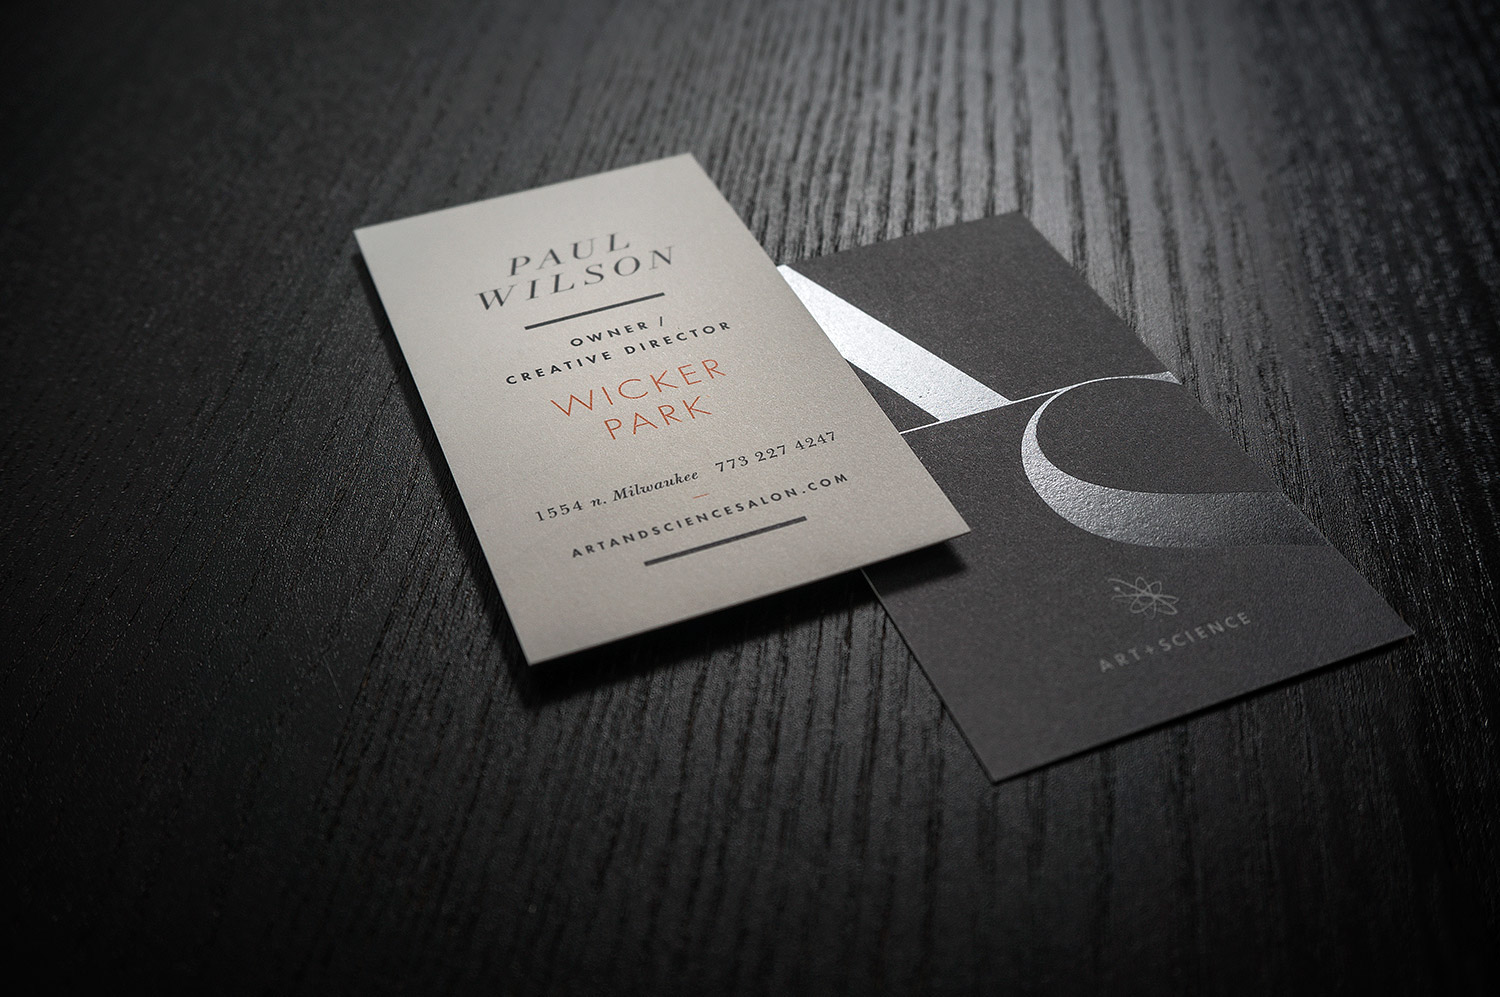 Stunning individual business cards photos business card ideas single business card template gallery templates example free reheart Choice Image